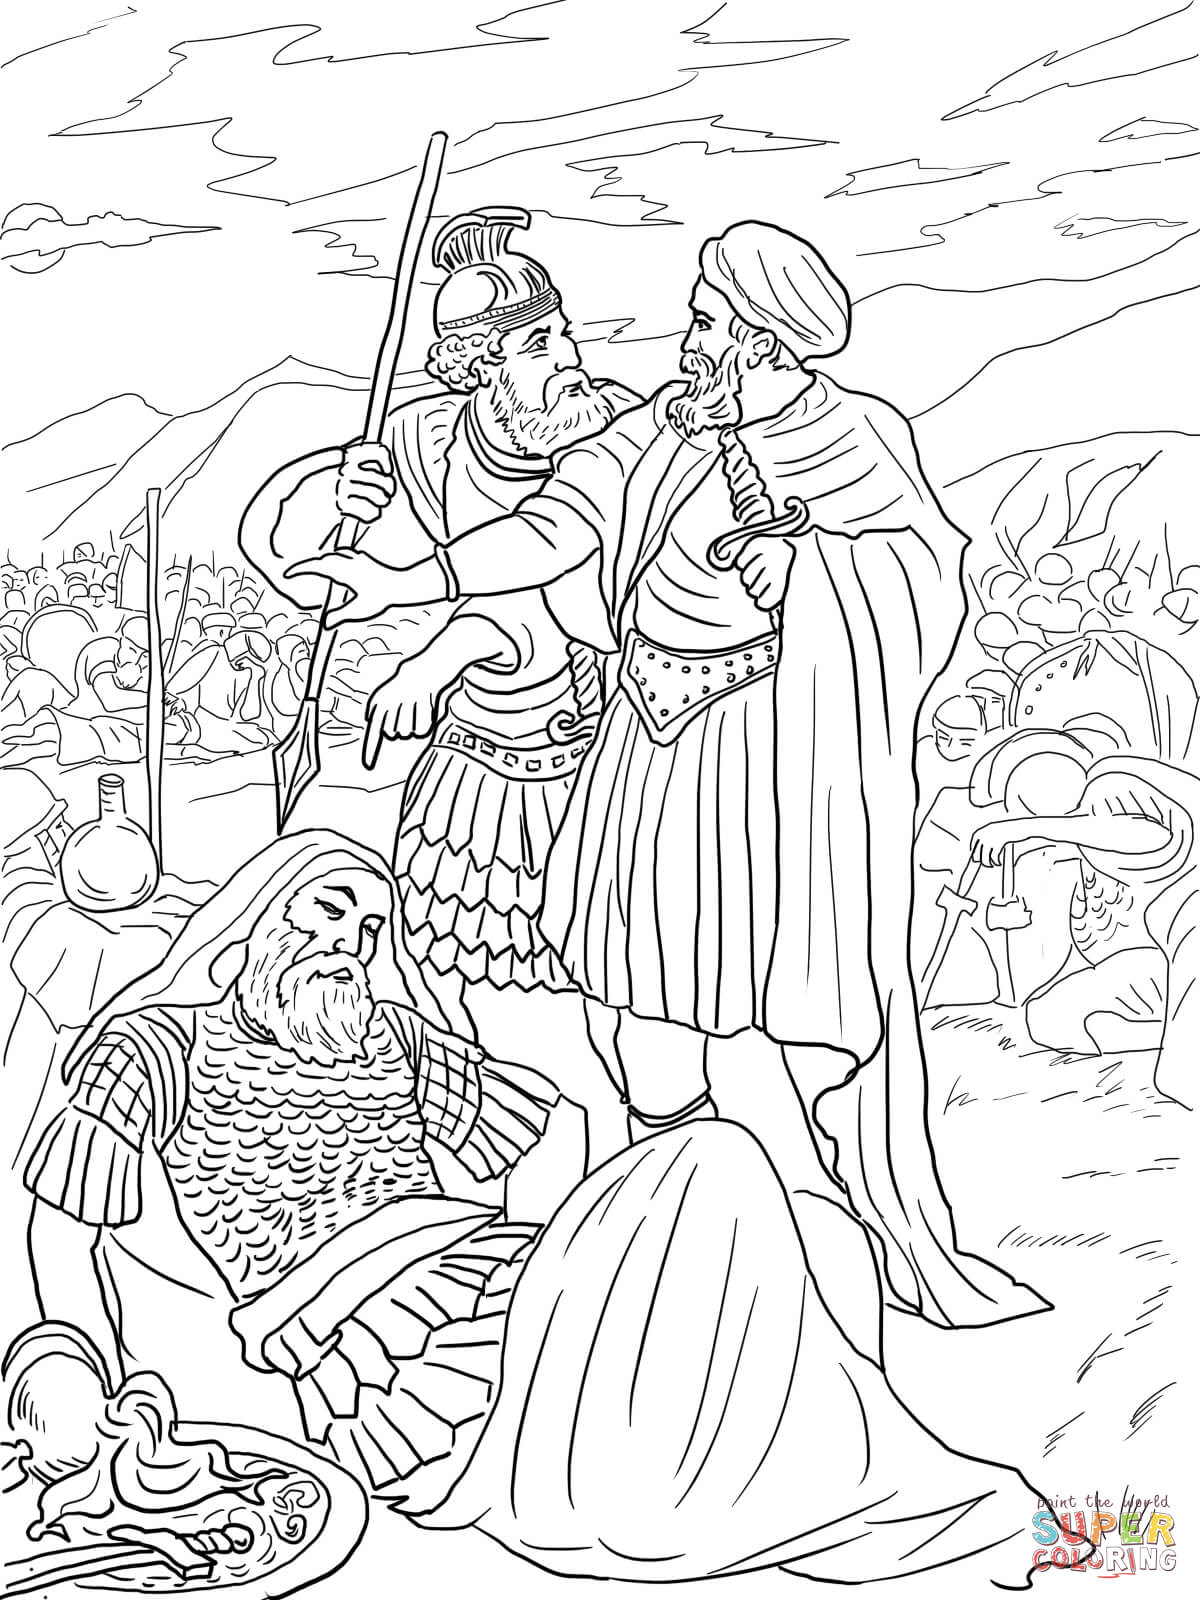 david spares king saul coloring page free printable coloring pages